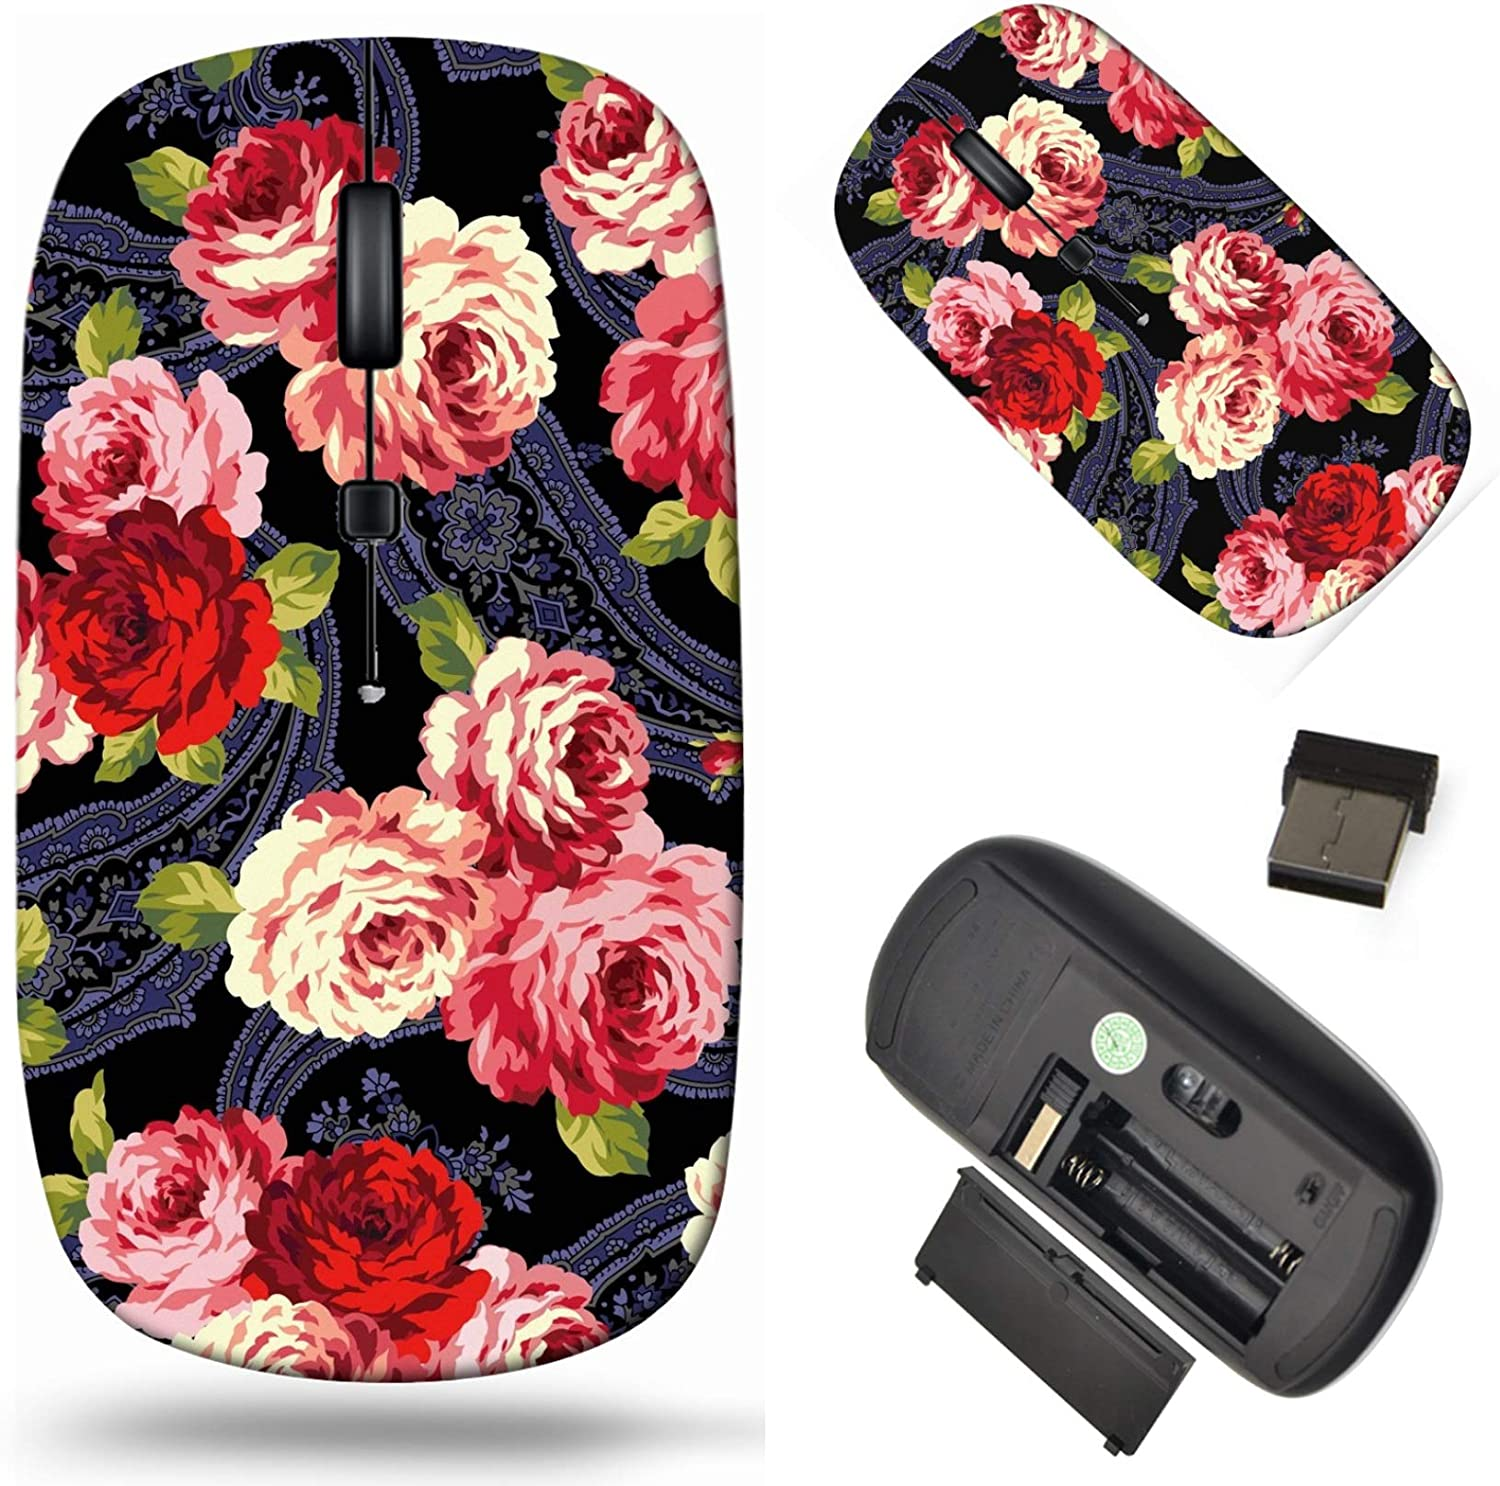 Wireless Computer Mouse Now free shipping 2.4G with Receiver Cor Laptop USB Fort Worth Mall